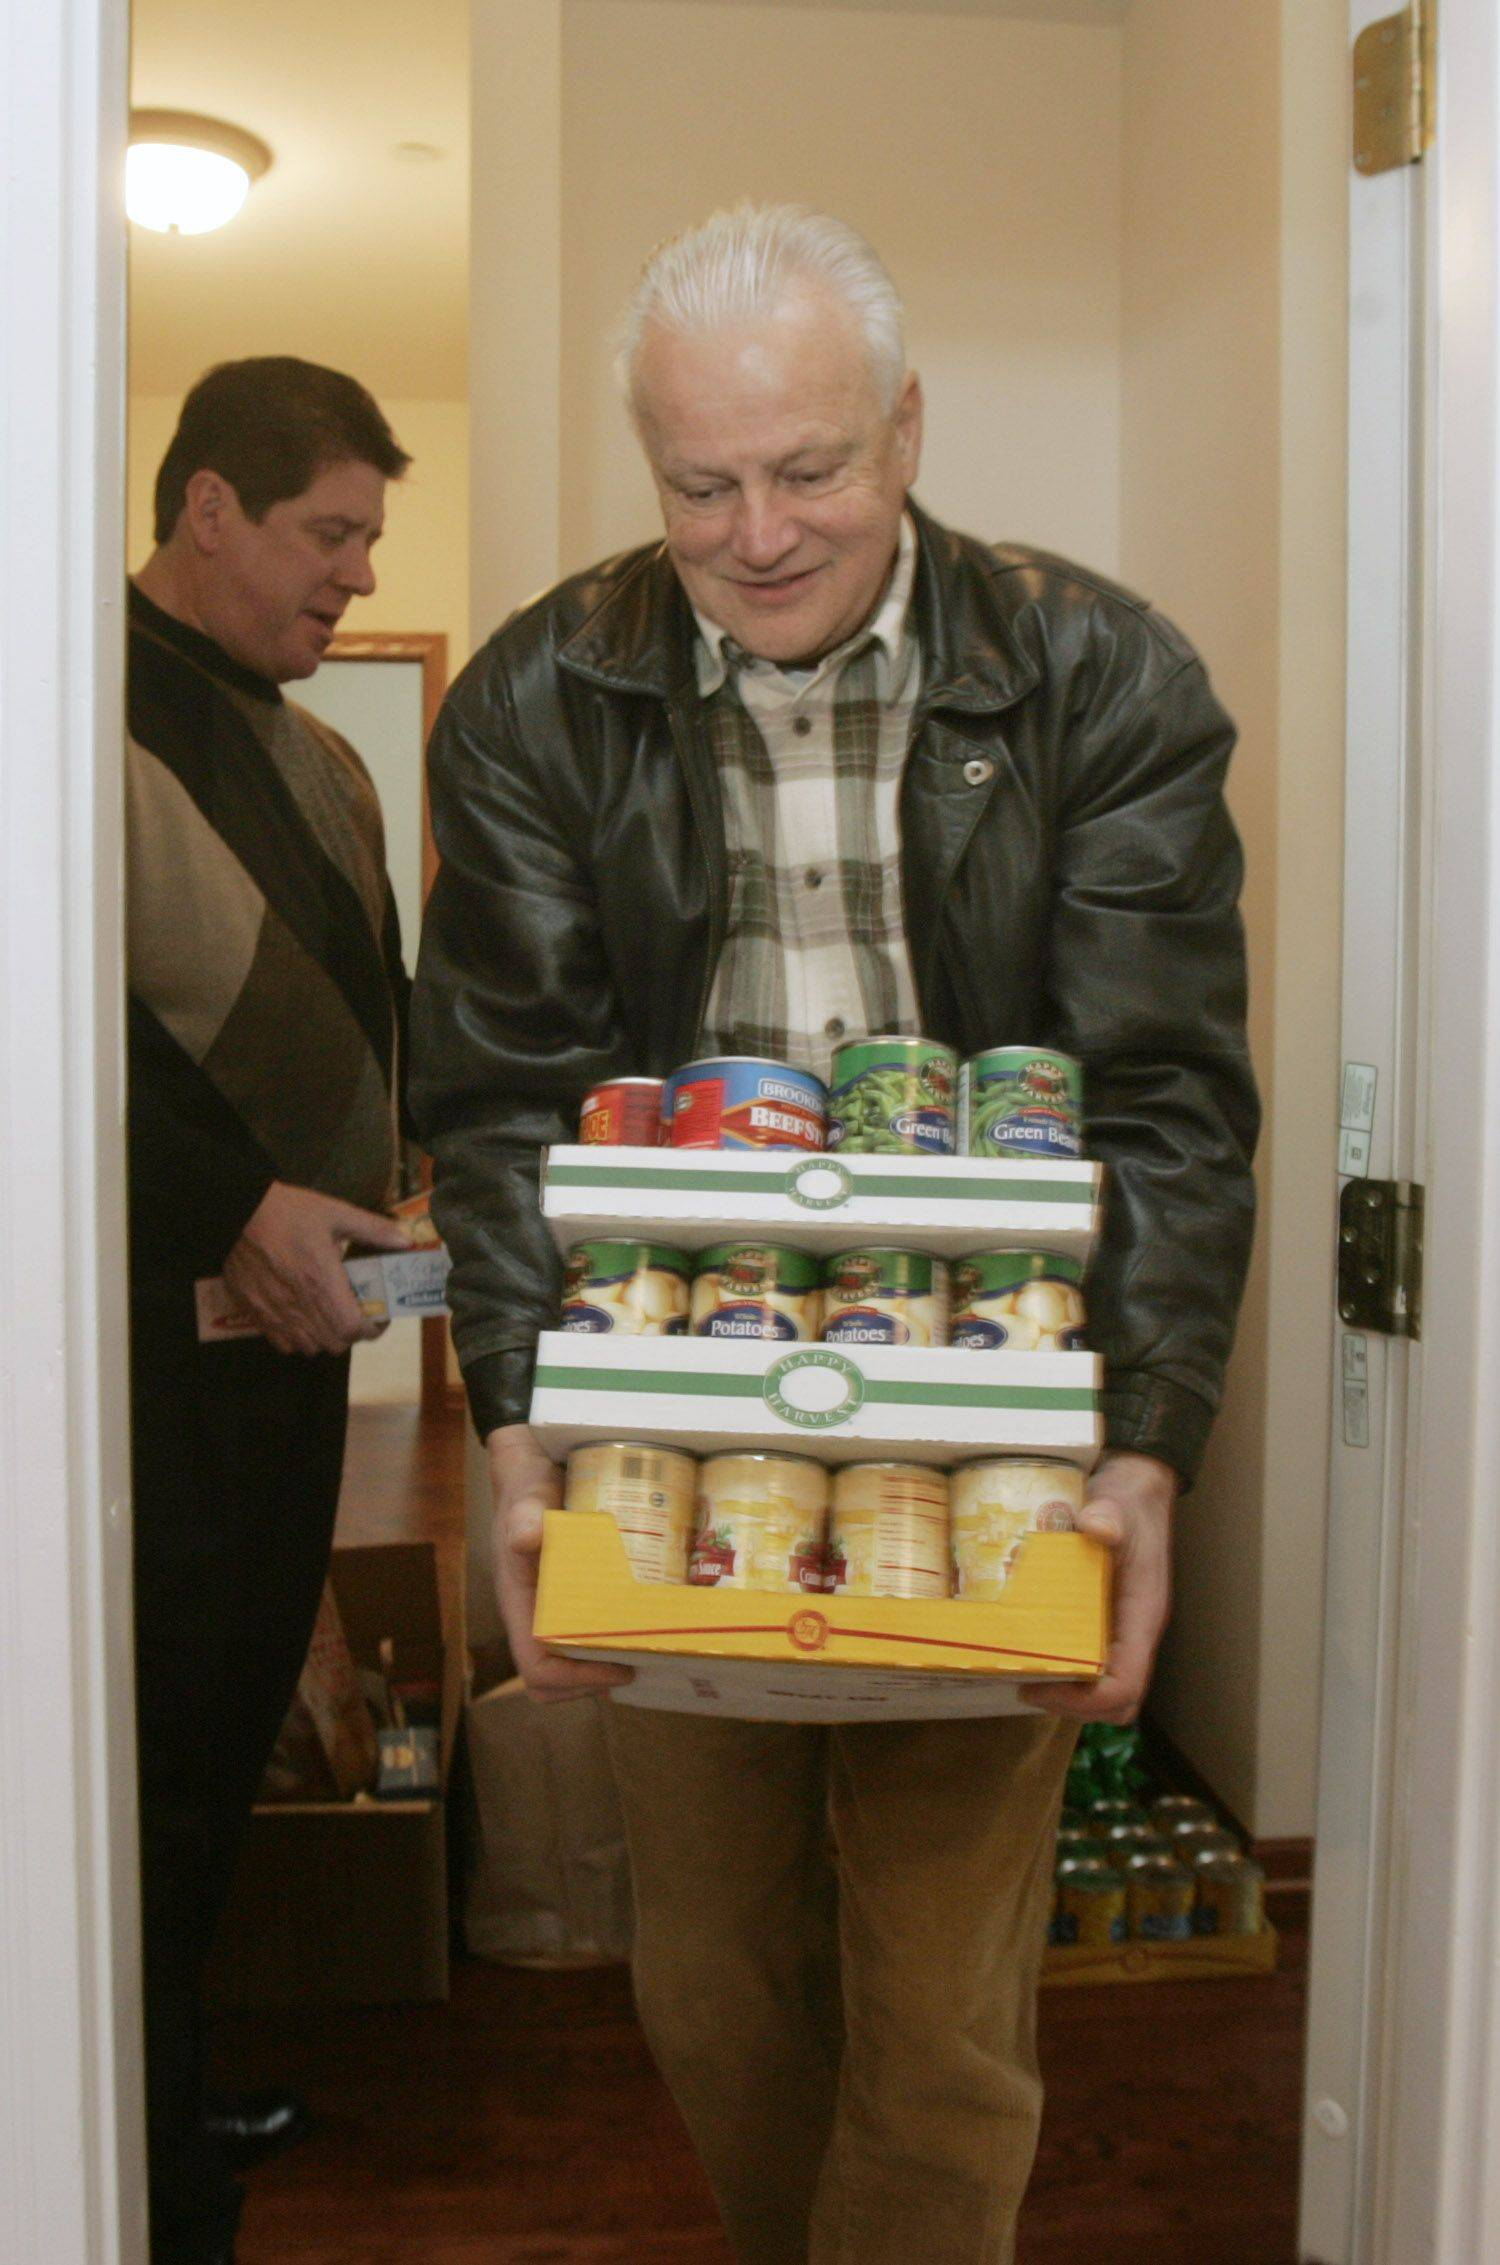 Algonquin-Lake in the Hills Interfaith Food Pantry president Richard Hoferle, here carrying food items, said he hopes to kick off a fundraising effort next month for a renovation project.